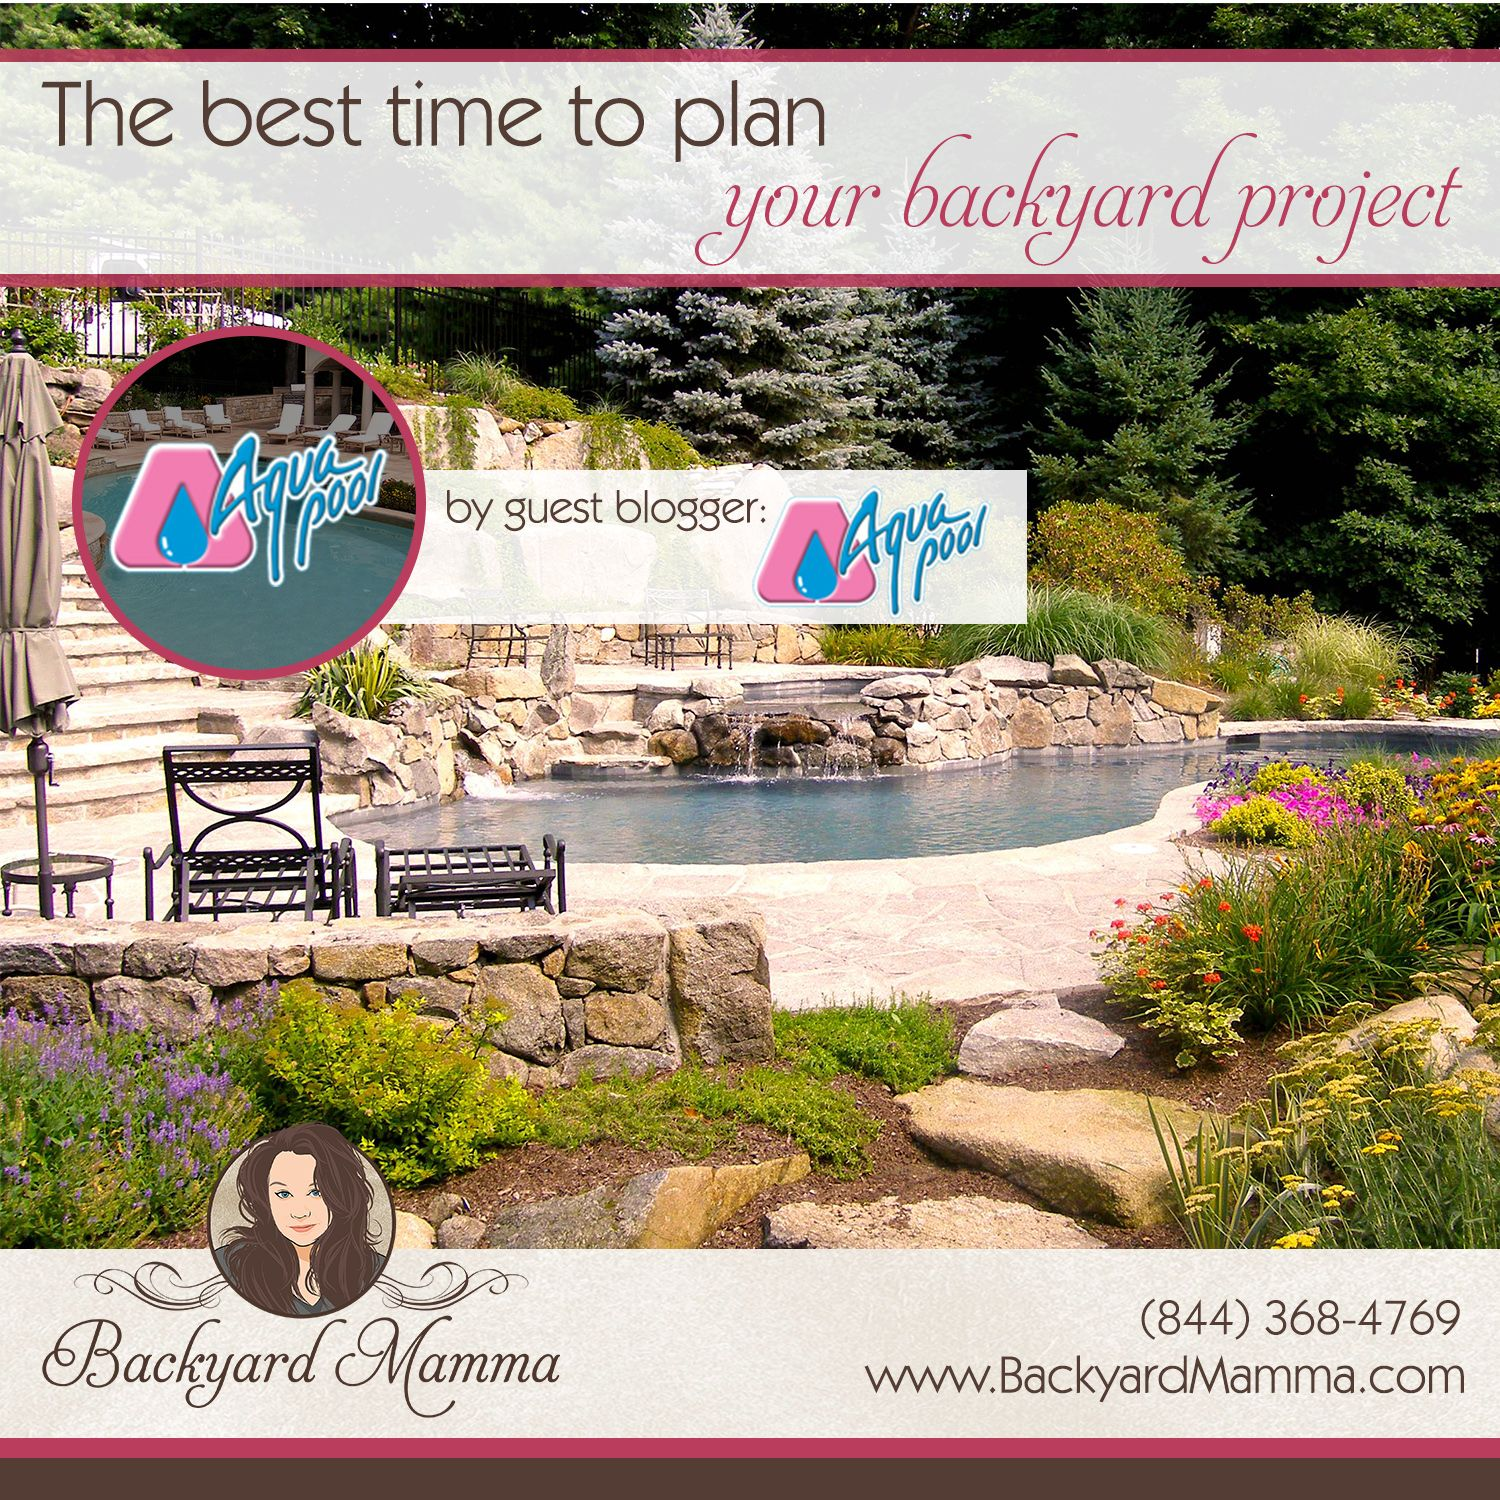 The best time to plan your backyard project with Aqua Pool & Patio